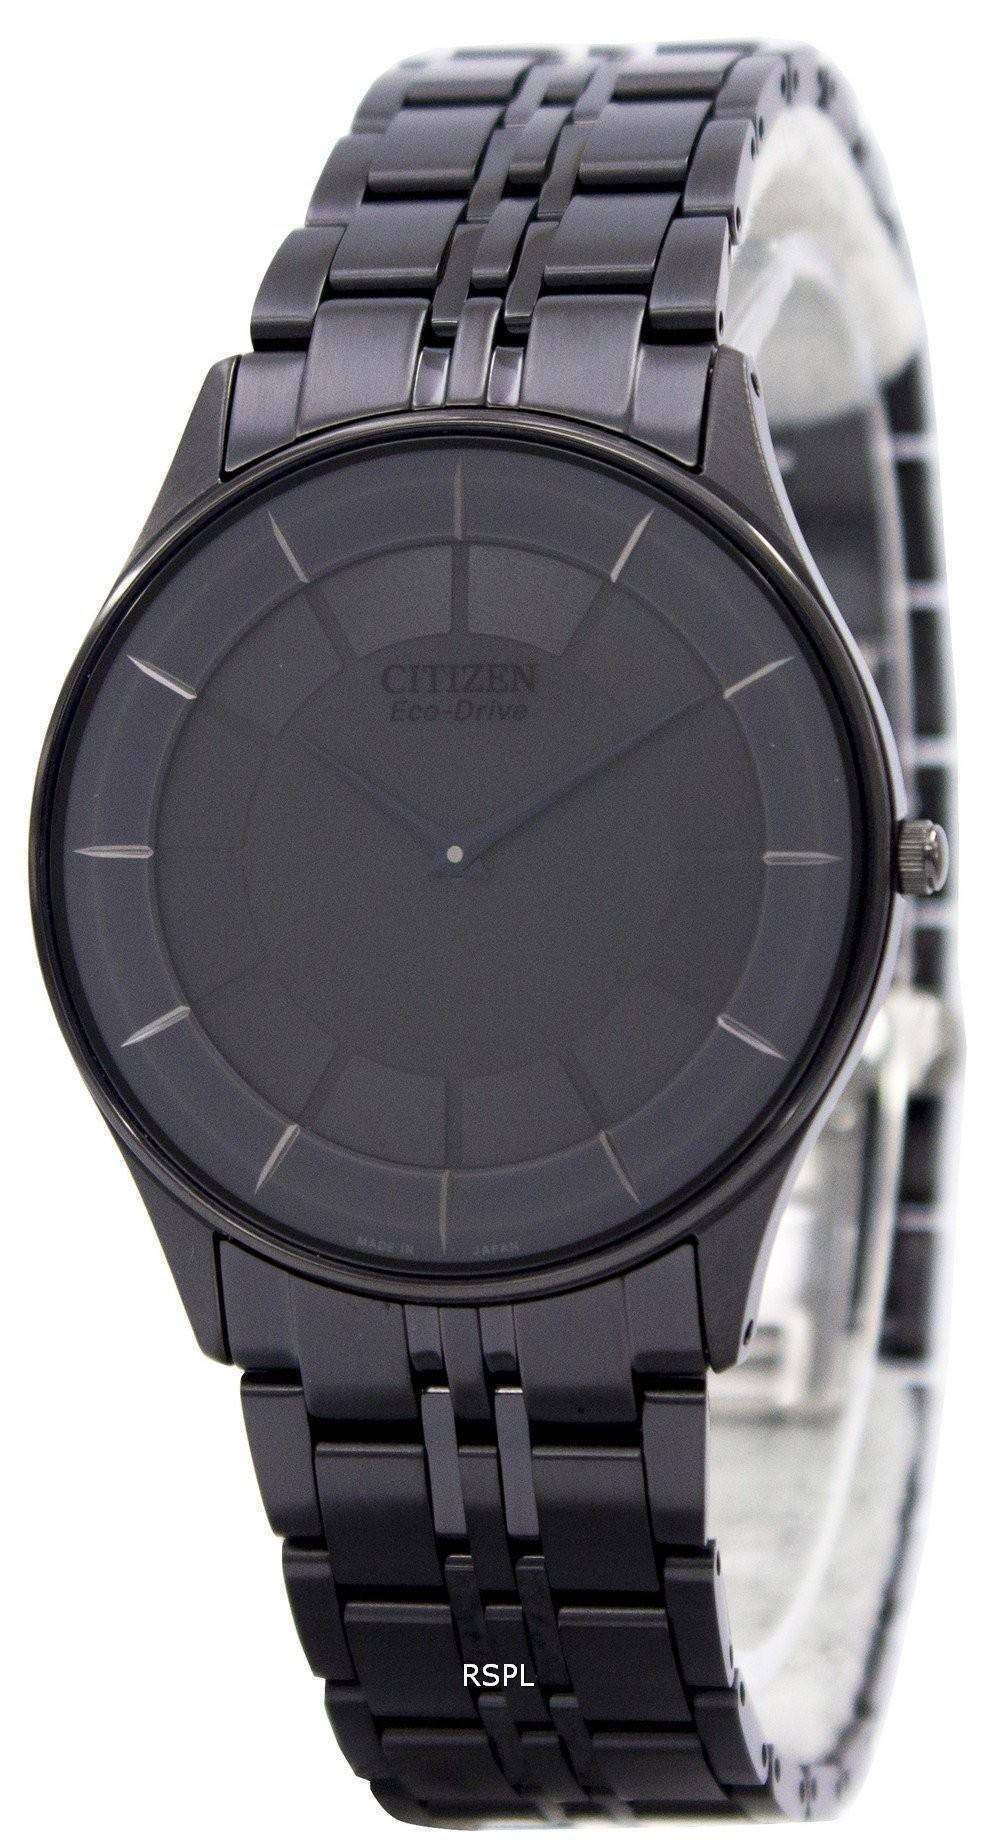 7caa2b1ebf0 Citizen Eco Drive Stilleto Super Thin AR3015-61E AR3015 Mens Watch